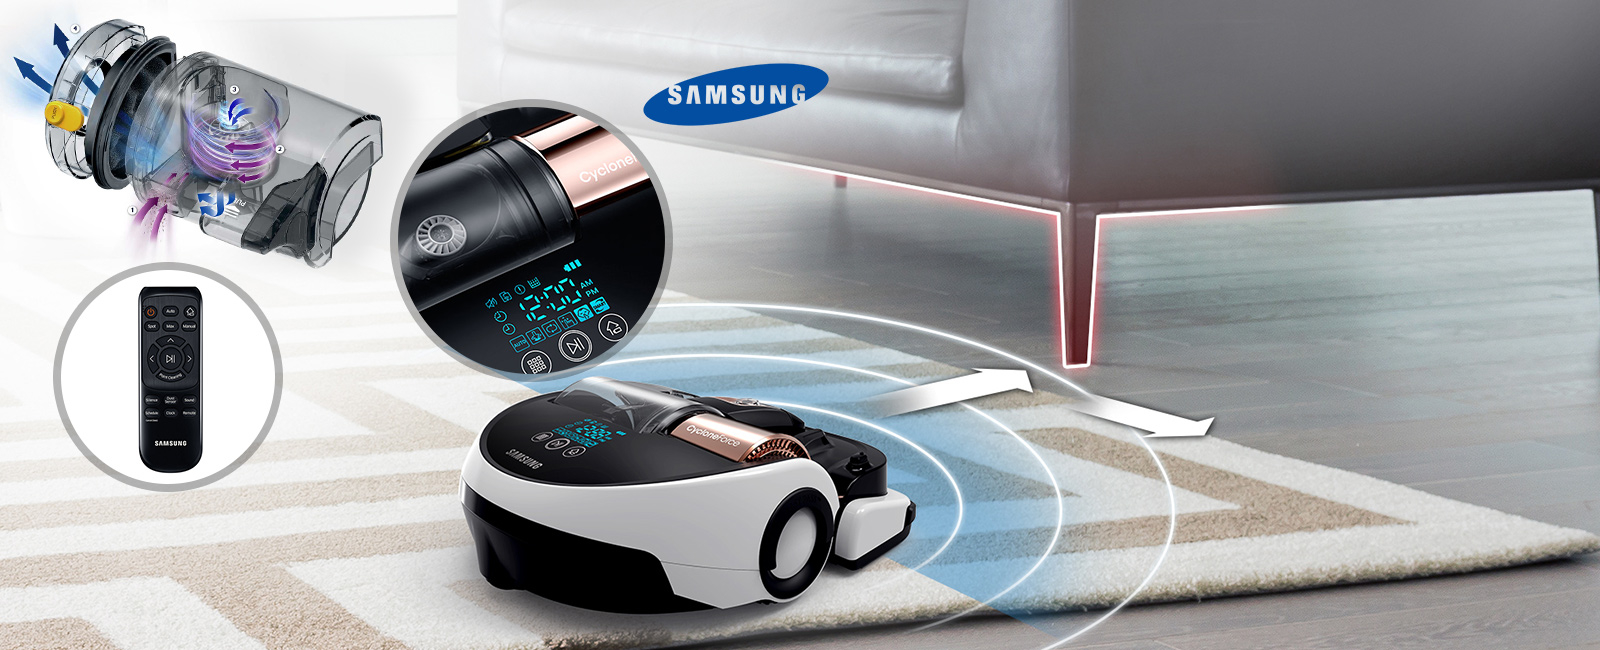 samsung powerbot vr20h9050 staubsauger roboter. Black Bedroom Furniture Sets. Home Design Ideas